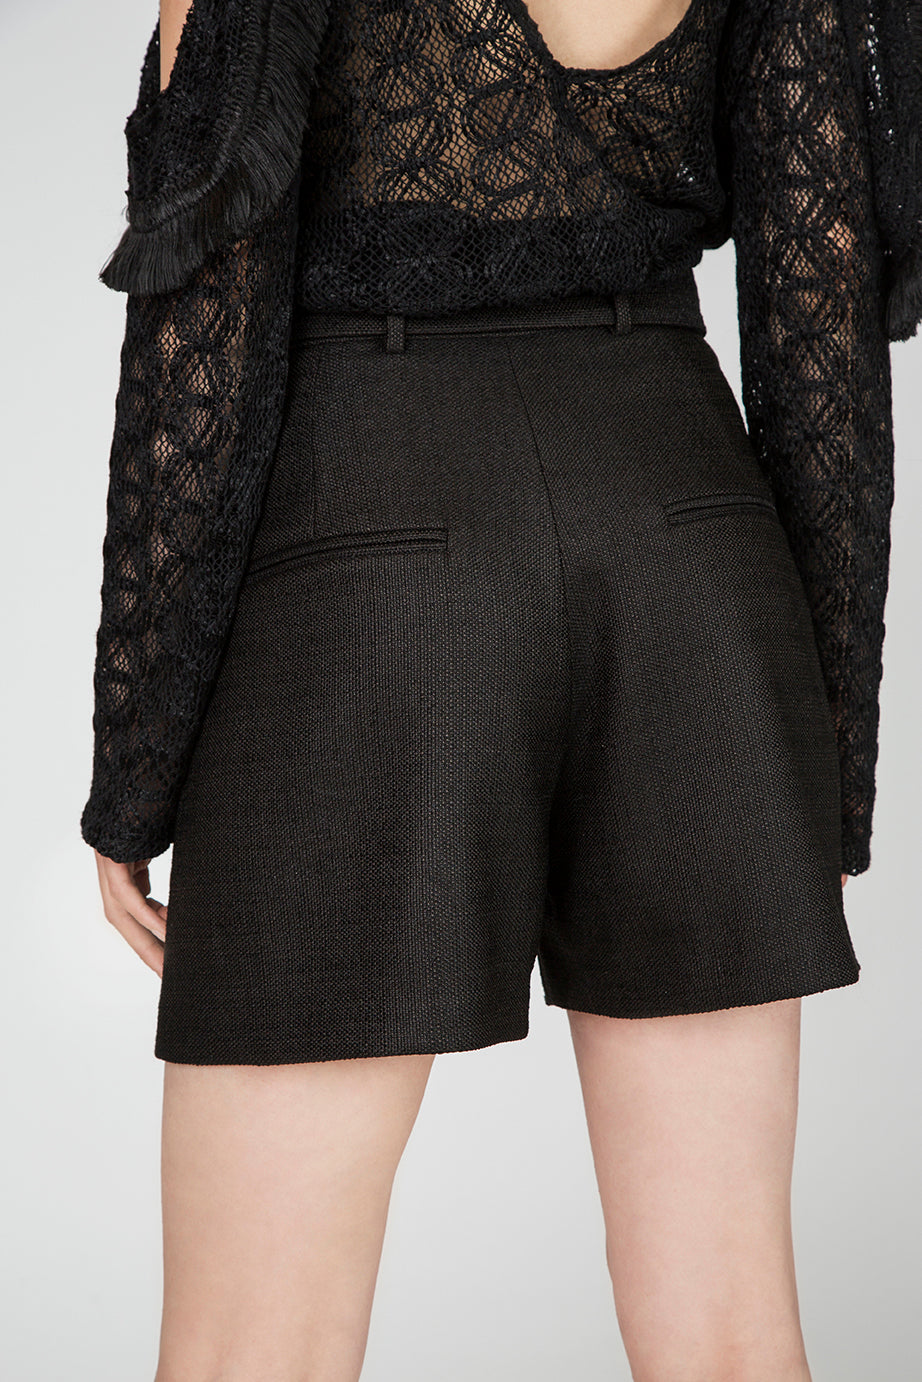 Zoey Black High Waist Shorts